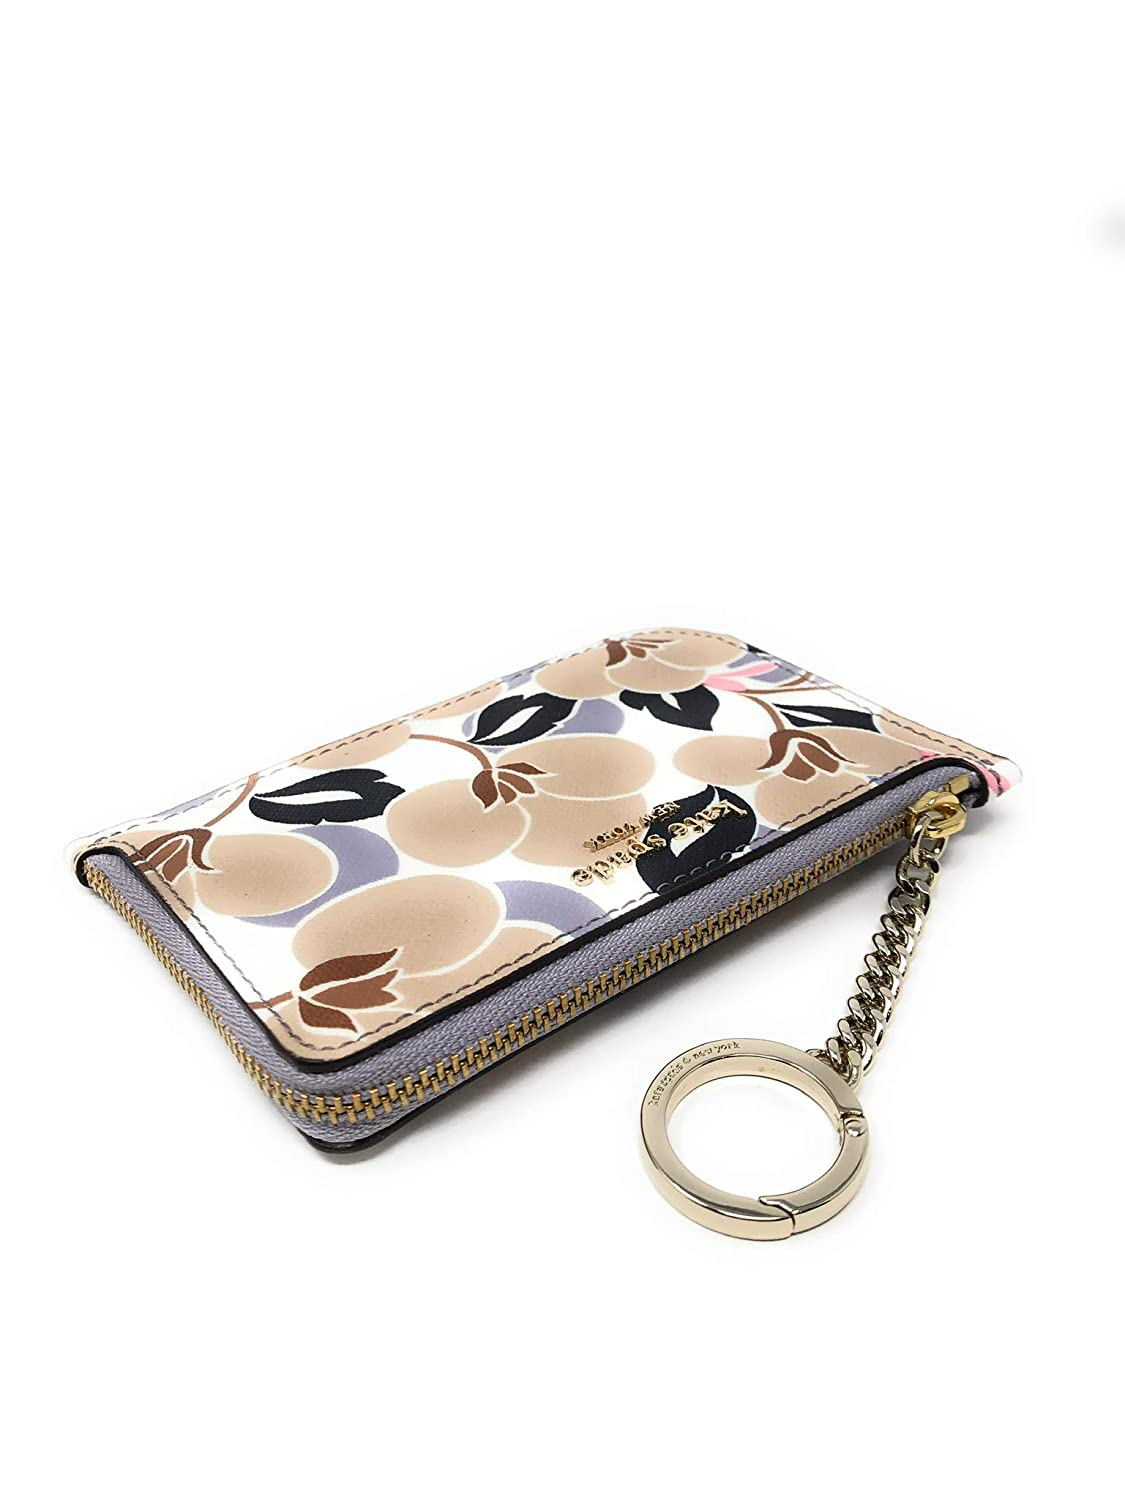 Kate Spade New York Medium L-Zip Card Case Holder Keychain Ring Floral Neutral